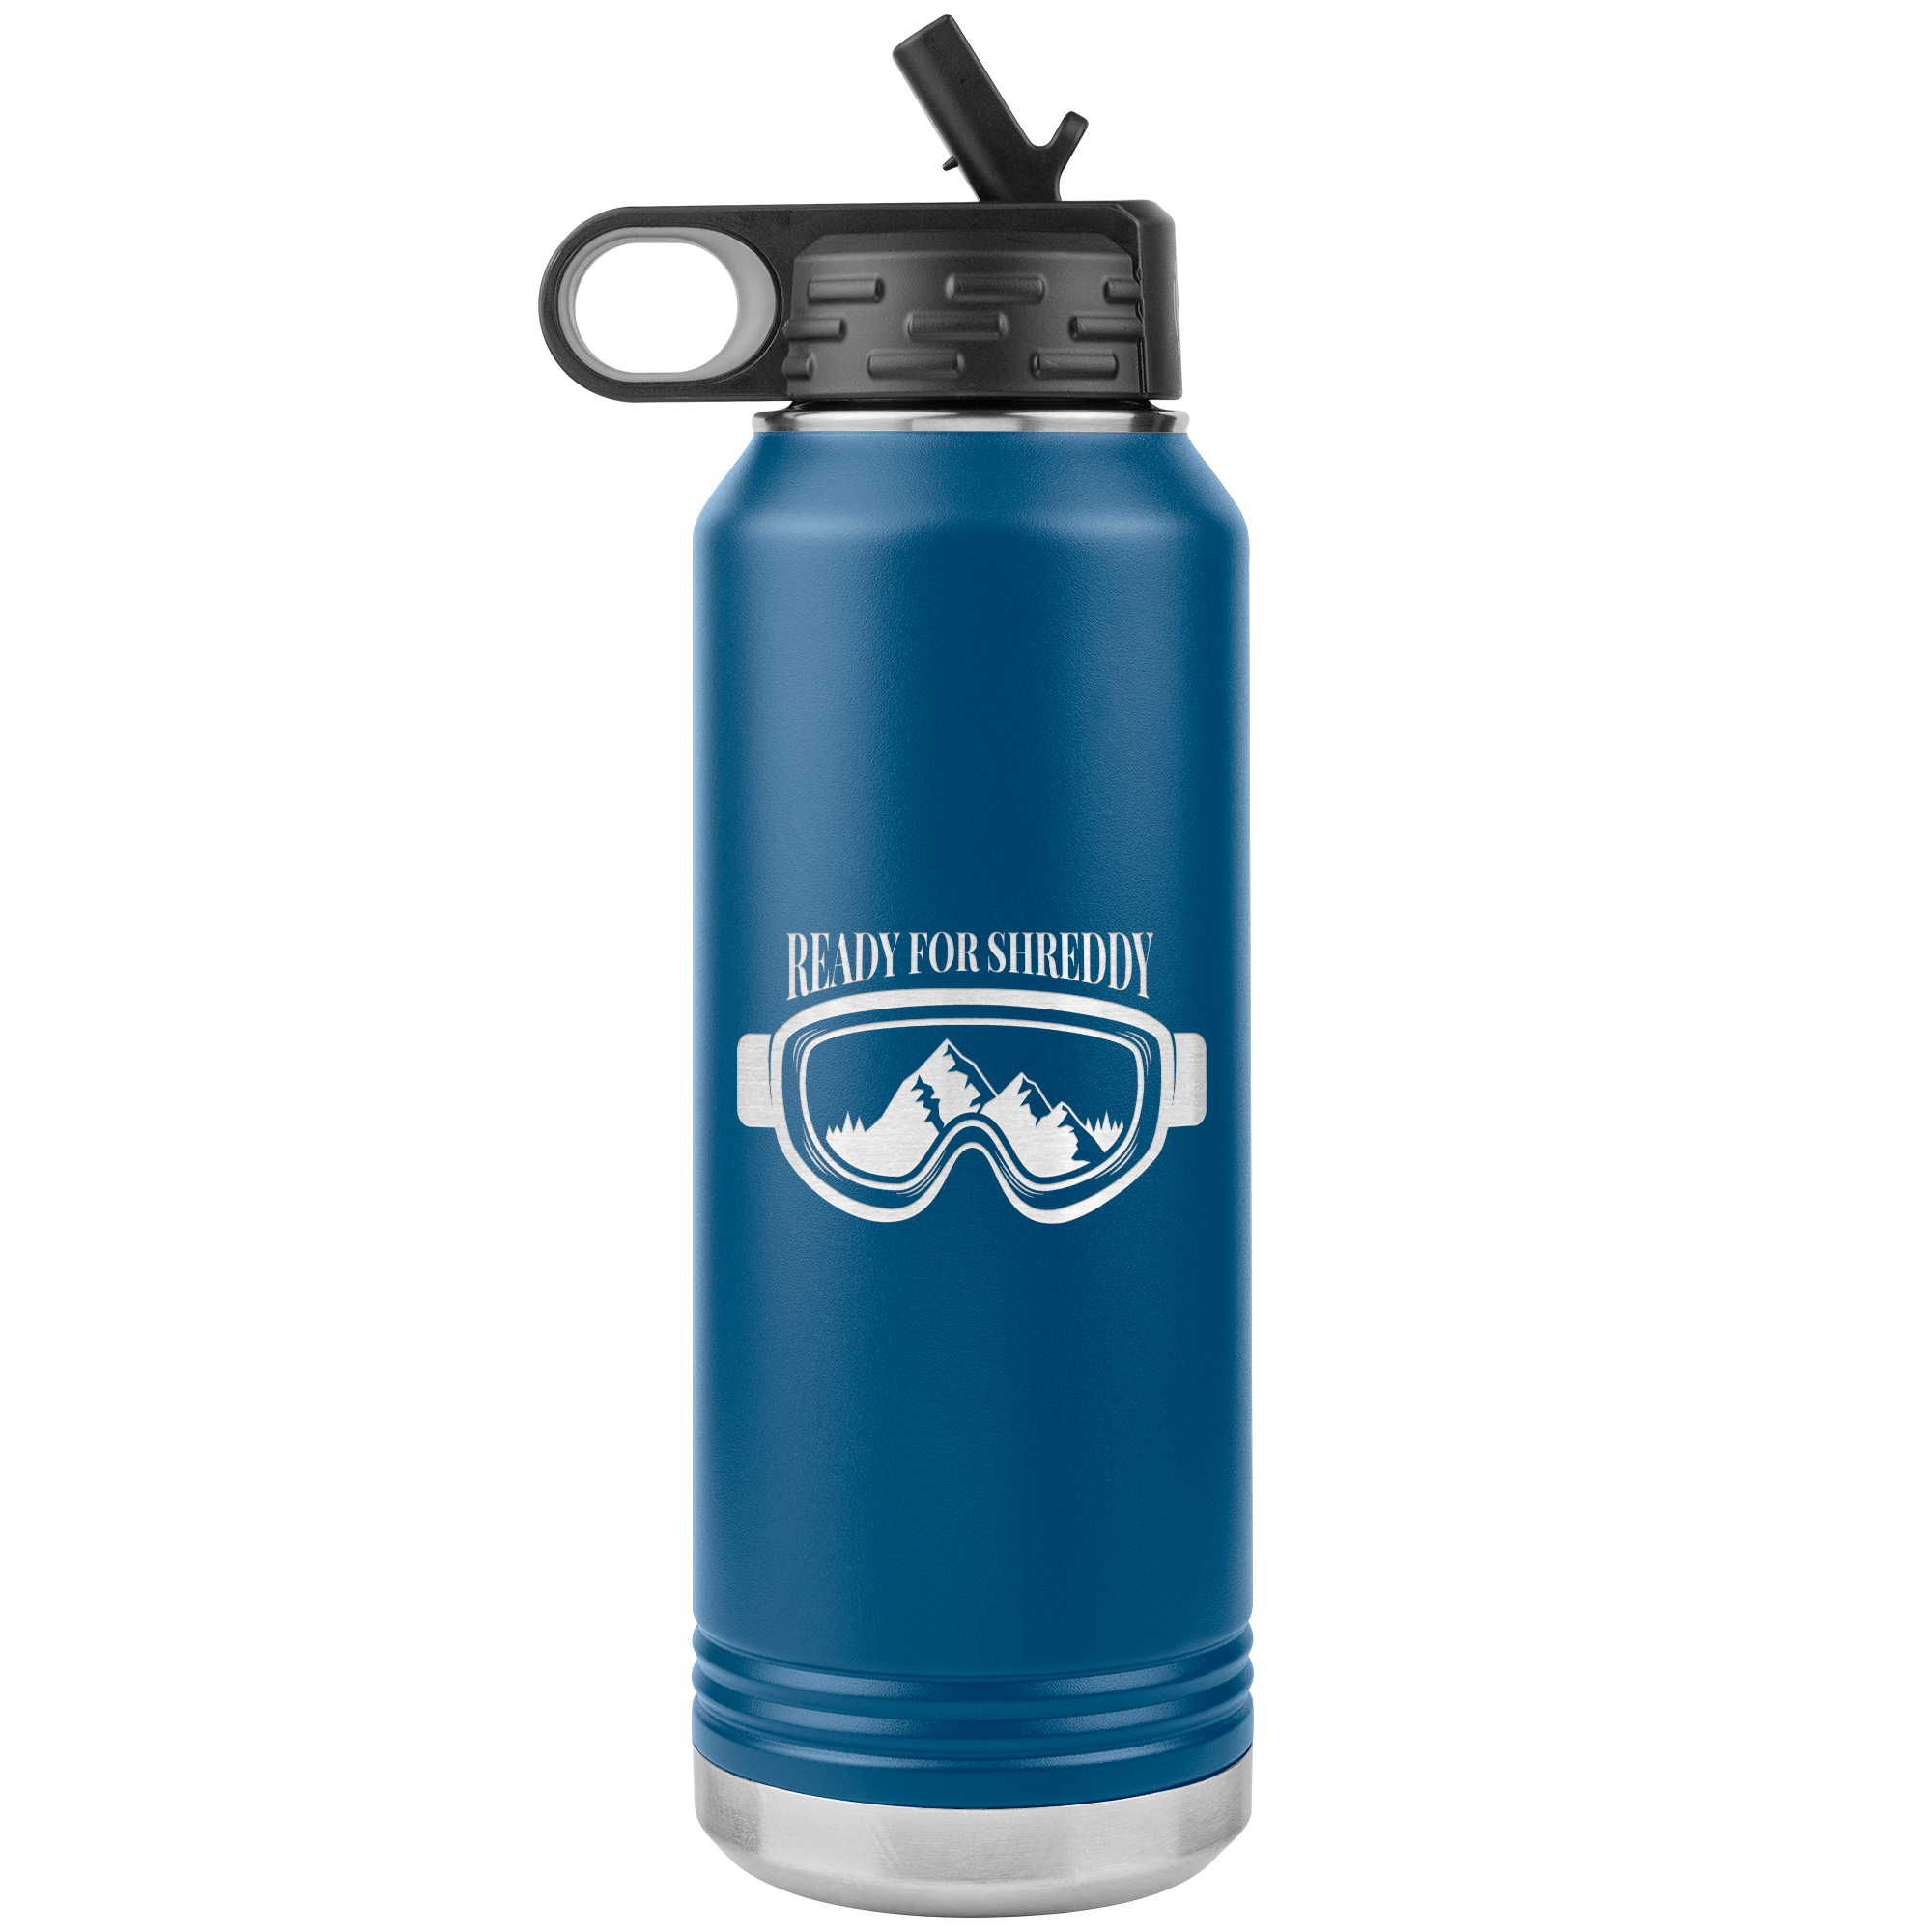 Ready For Shreddy 32oz Water Bottle Tumbler